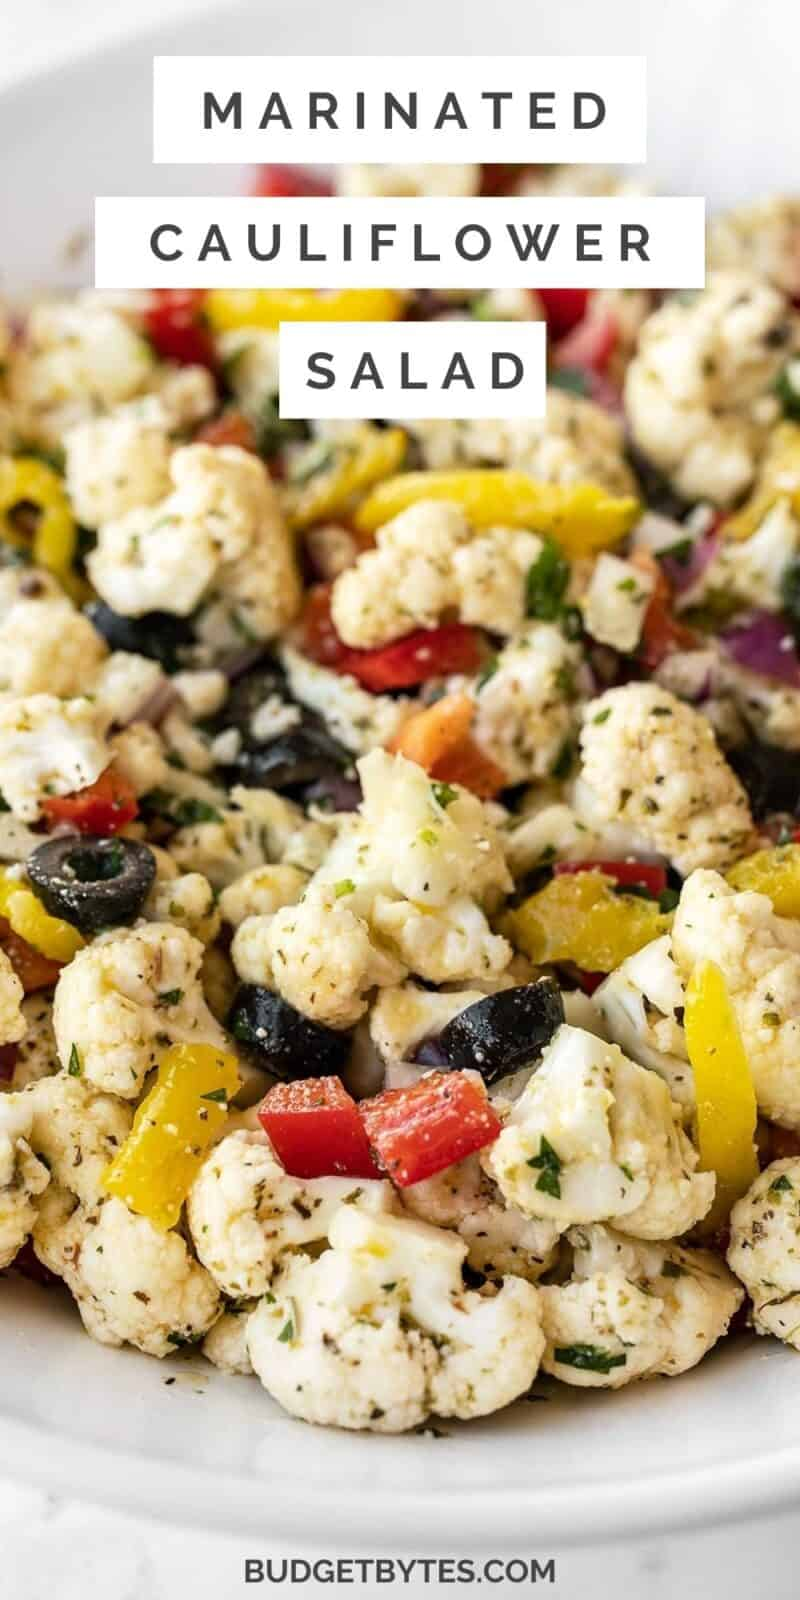 close up of marinated cauliflower salad, title text at the top